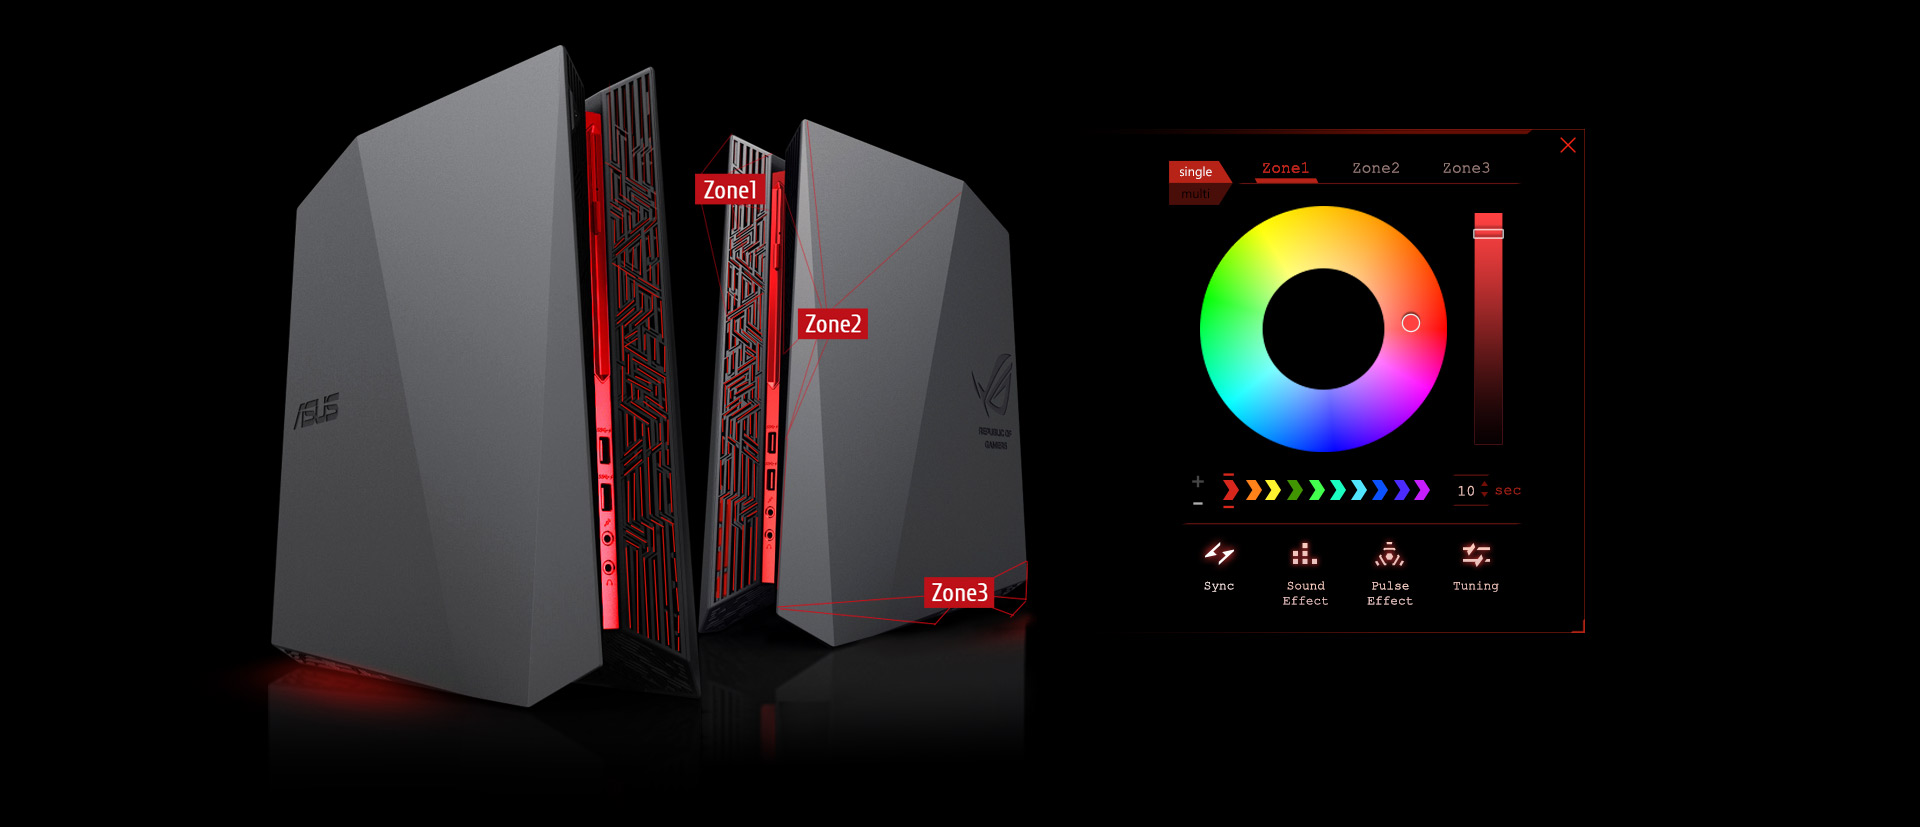 Gaming desktop ASUS RoG G20CB VGA iGTX1070 8GB -123.jpeg